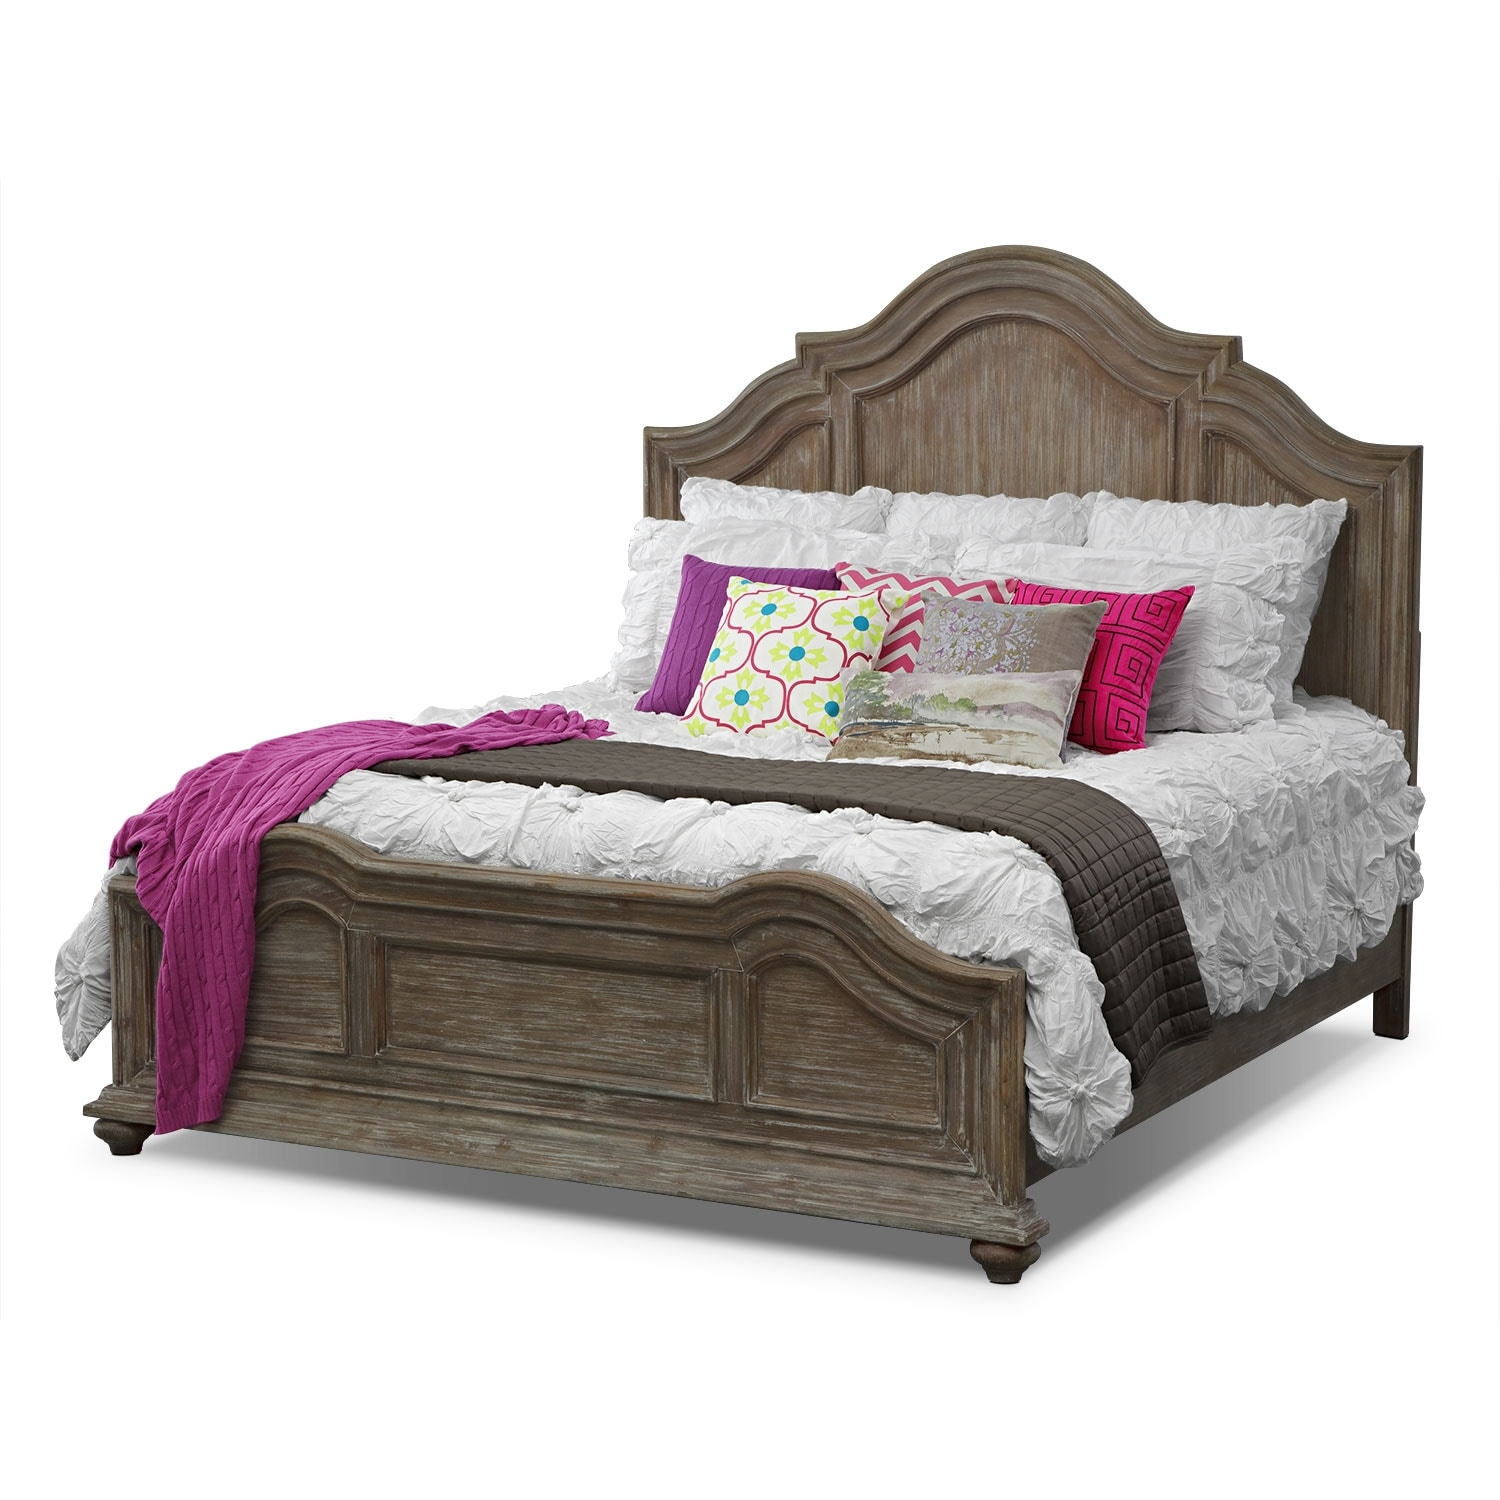 Erin Queen Bedding Set